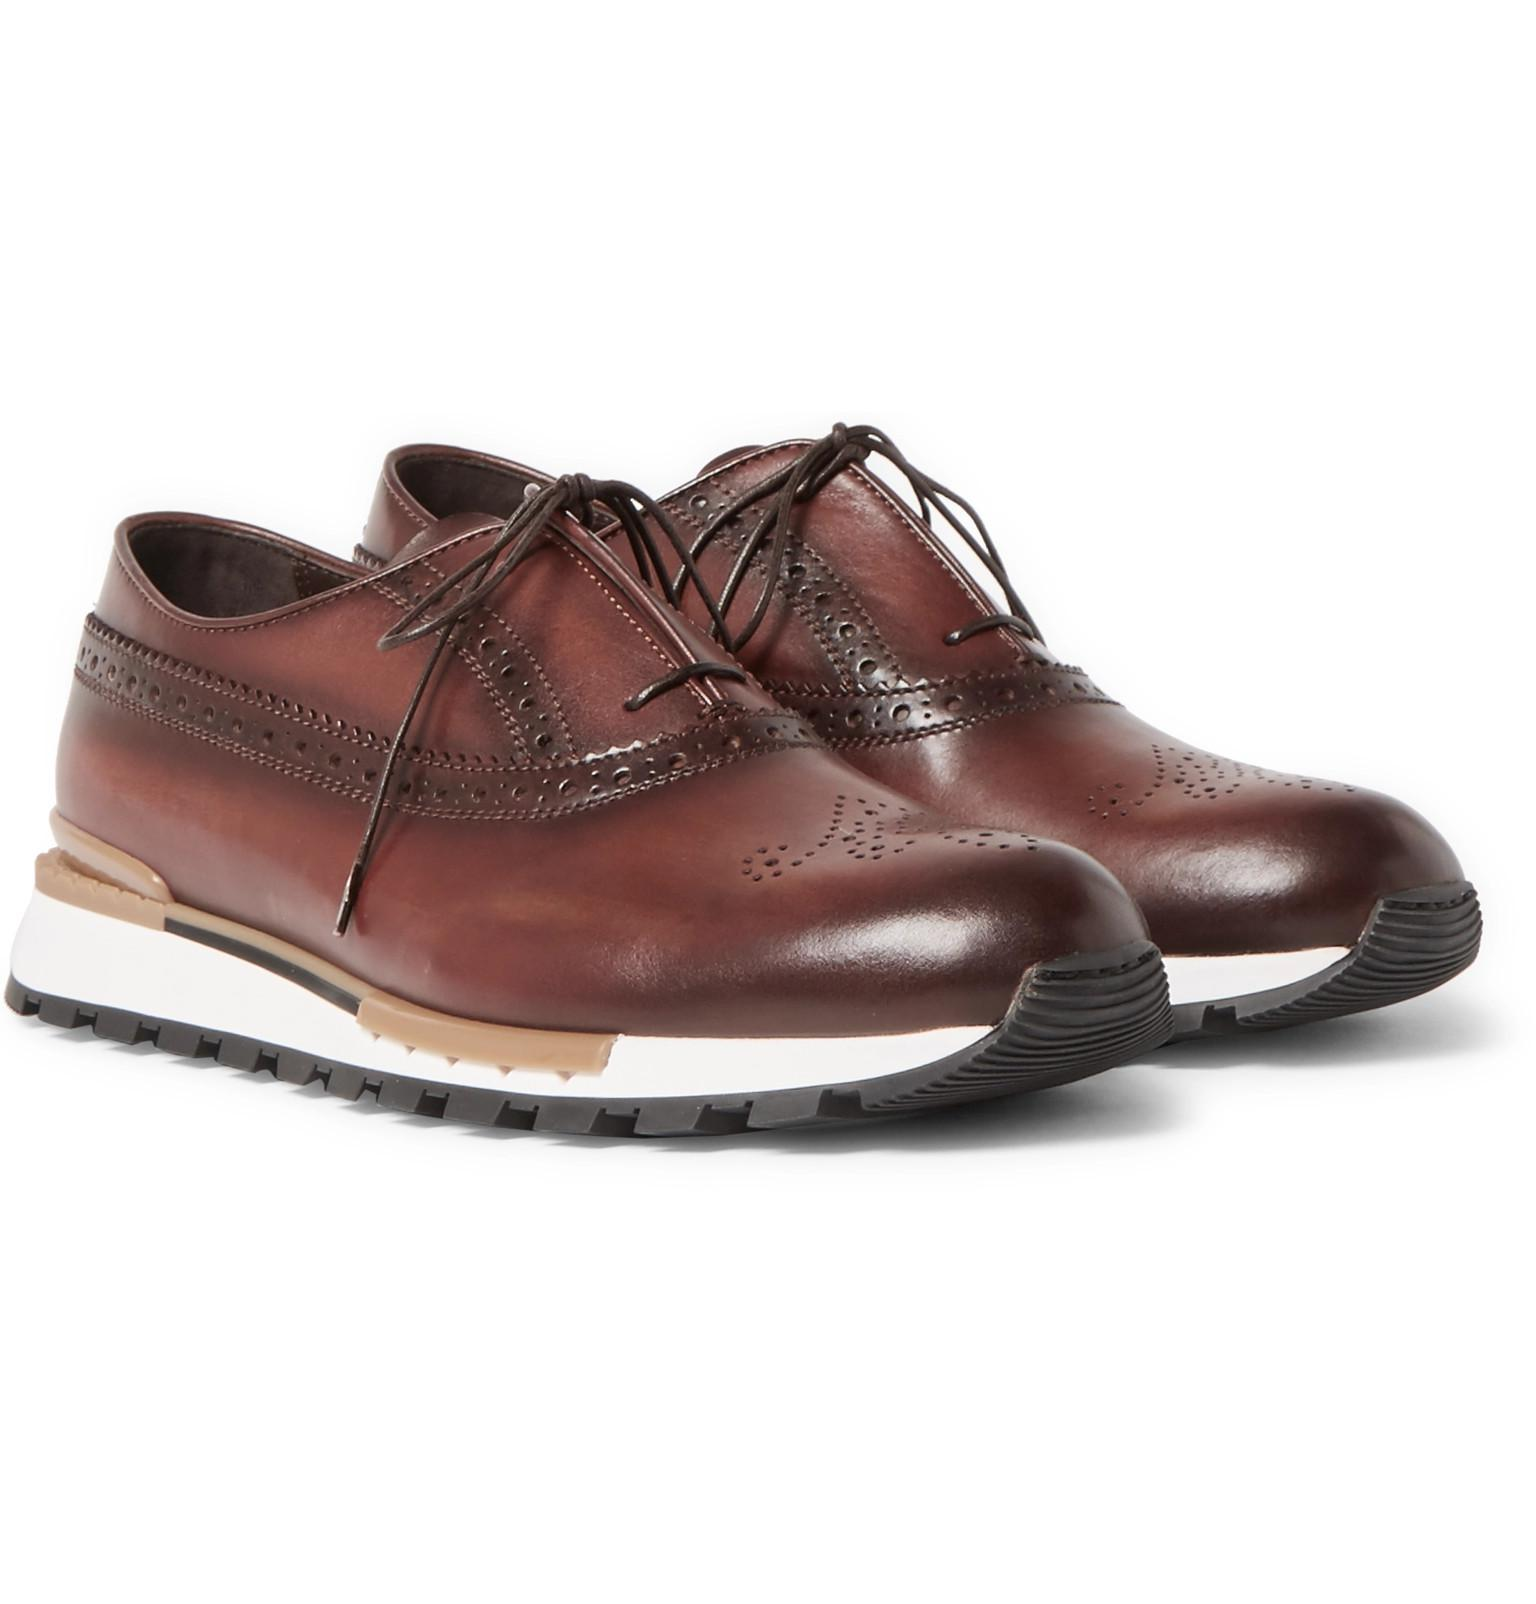 Fast Track Leather Sneakers Berluti Free Shipping With Paypal Outlet Finishline For Nice ufkfHqxy3